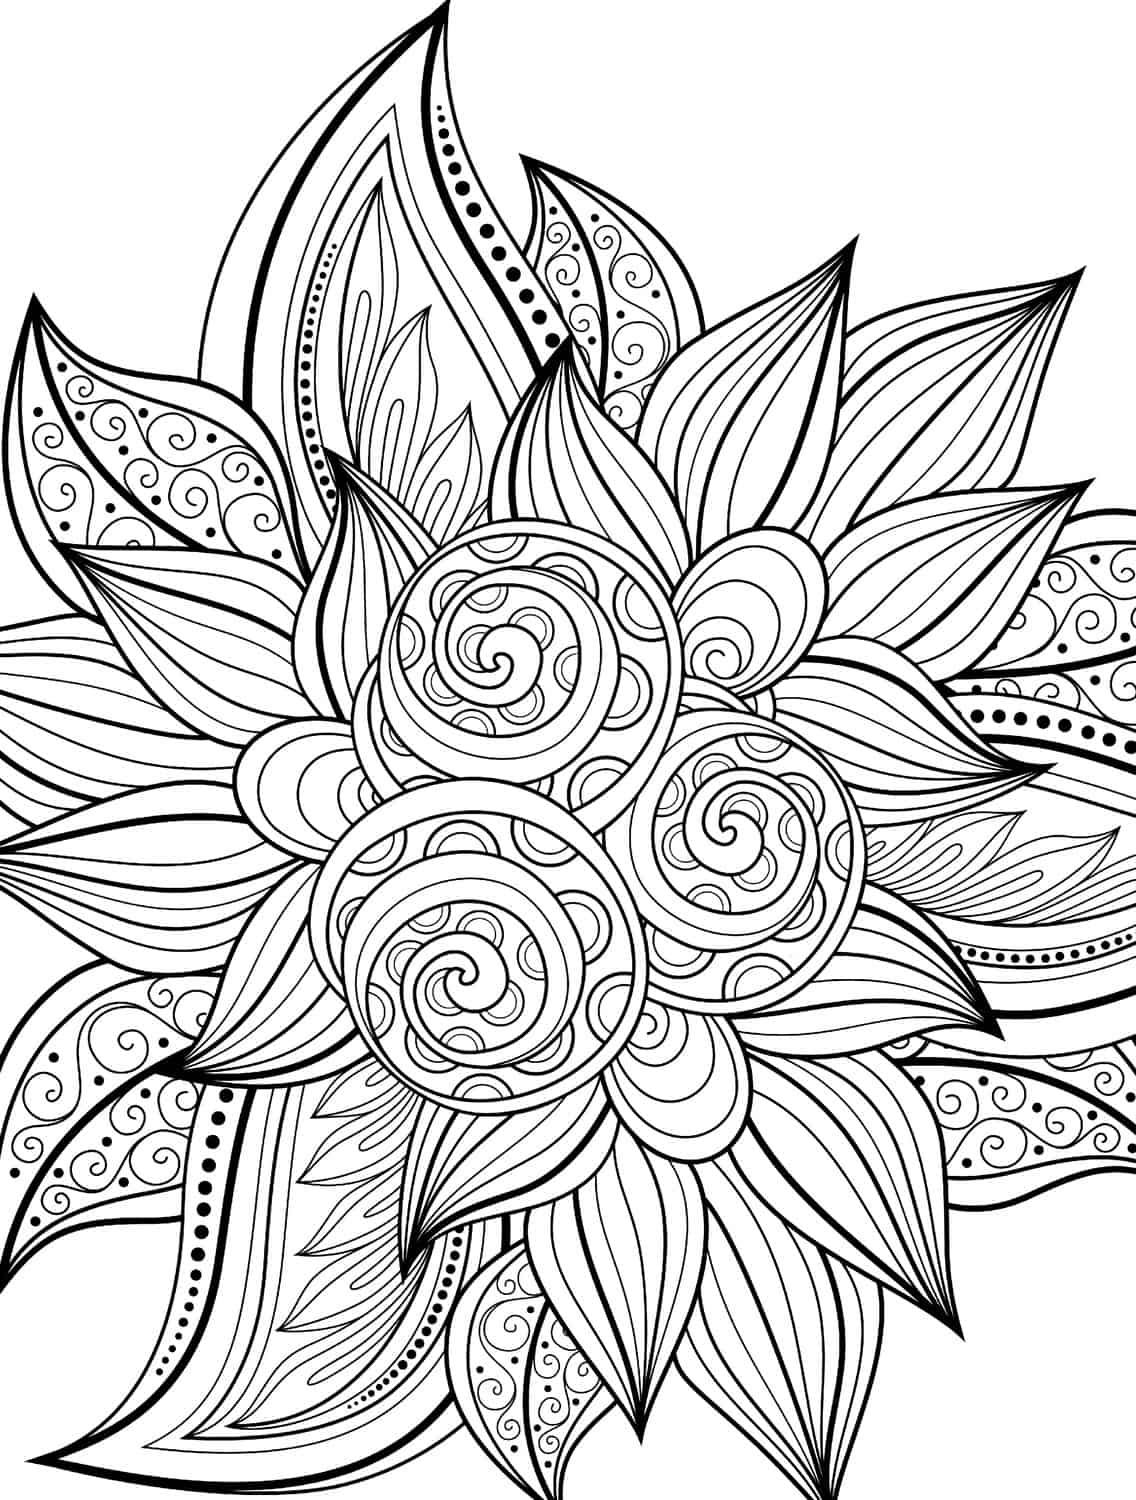 coloring pictures for adults elephant coloring pages for adults best coloring pages pictures for adults coloring